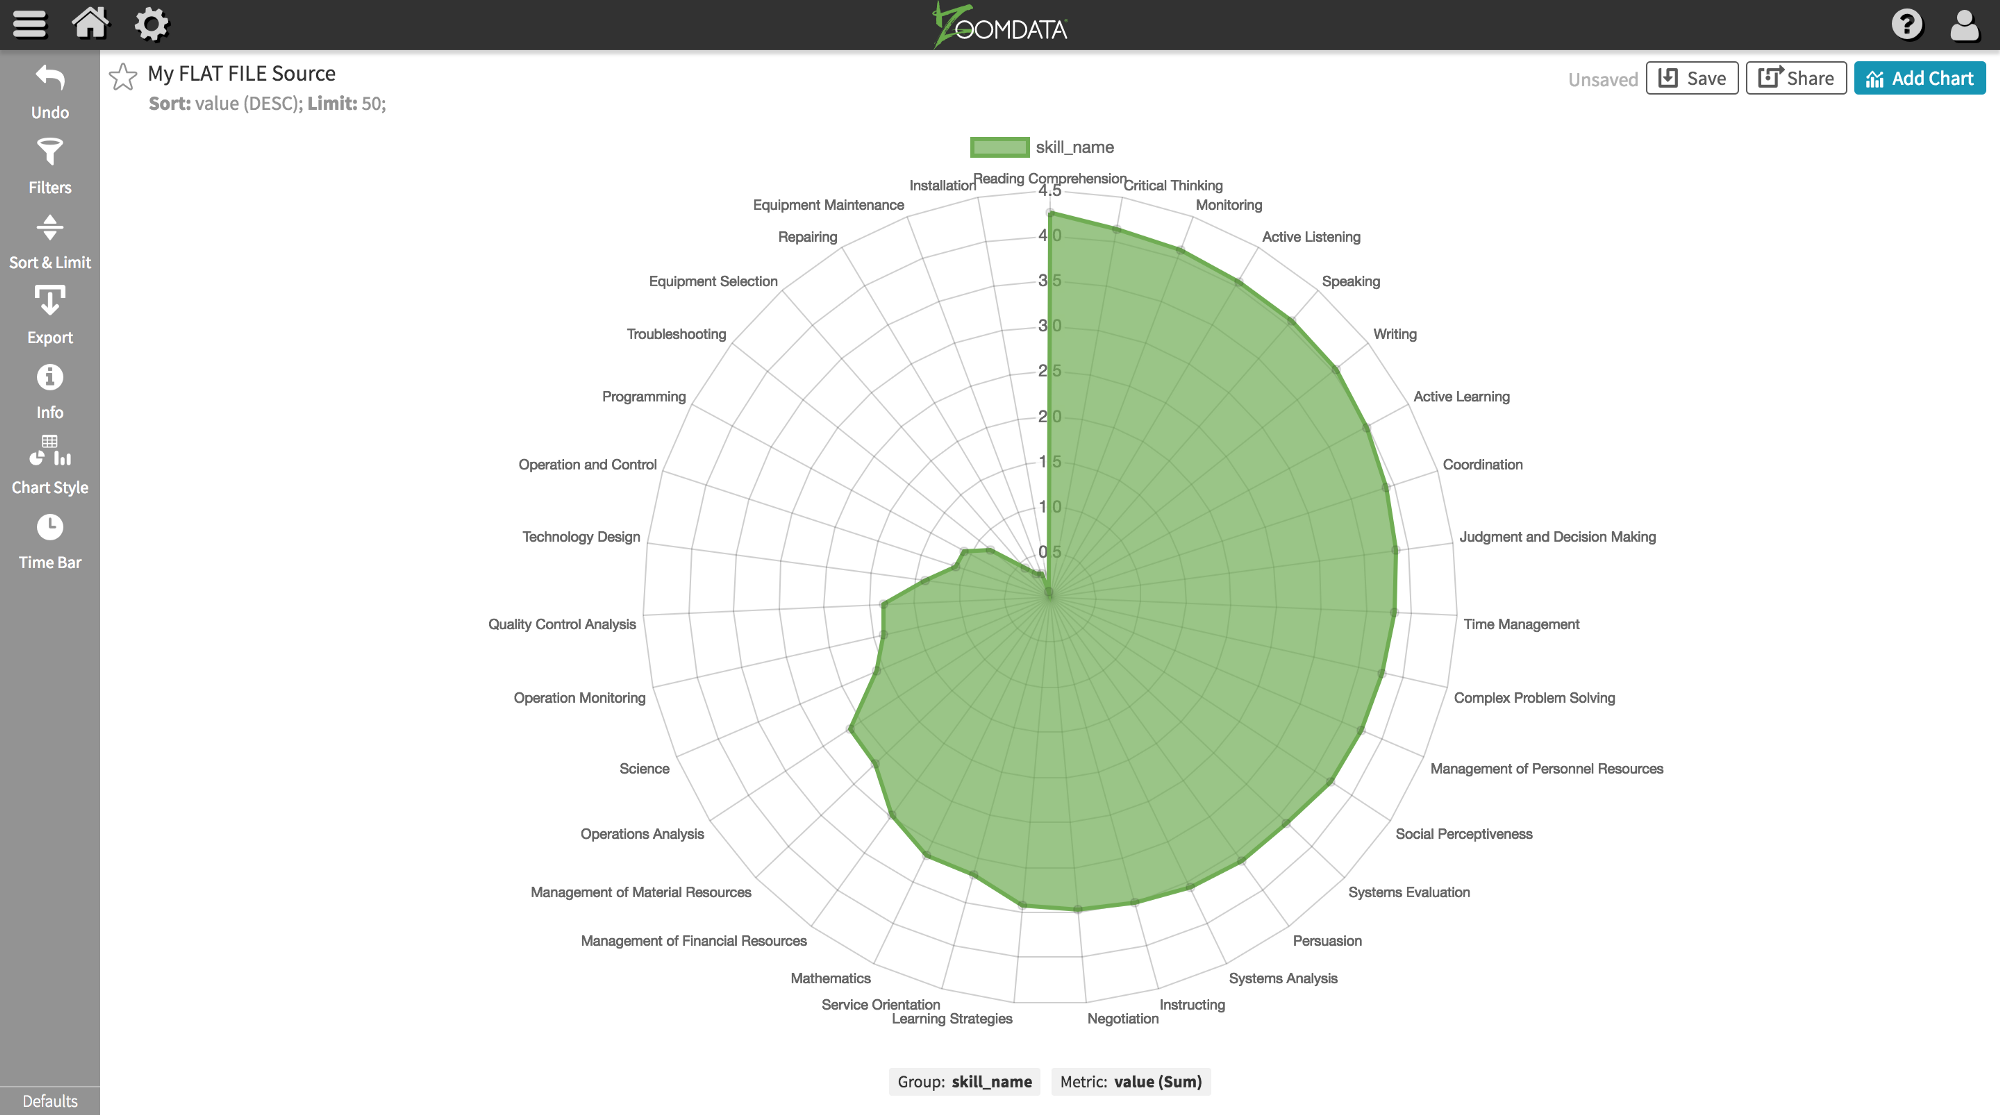 Simple visualization template with zoomdata chart cli tool and simple visualization template with zoomdata chart cli tool and chartjs ccuart Choice Image